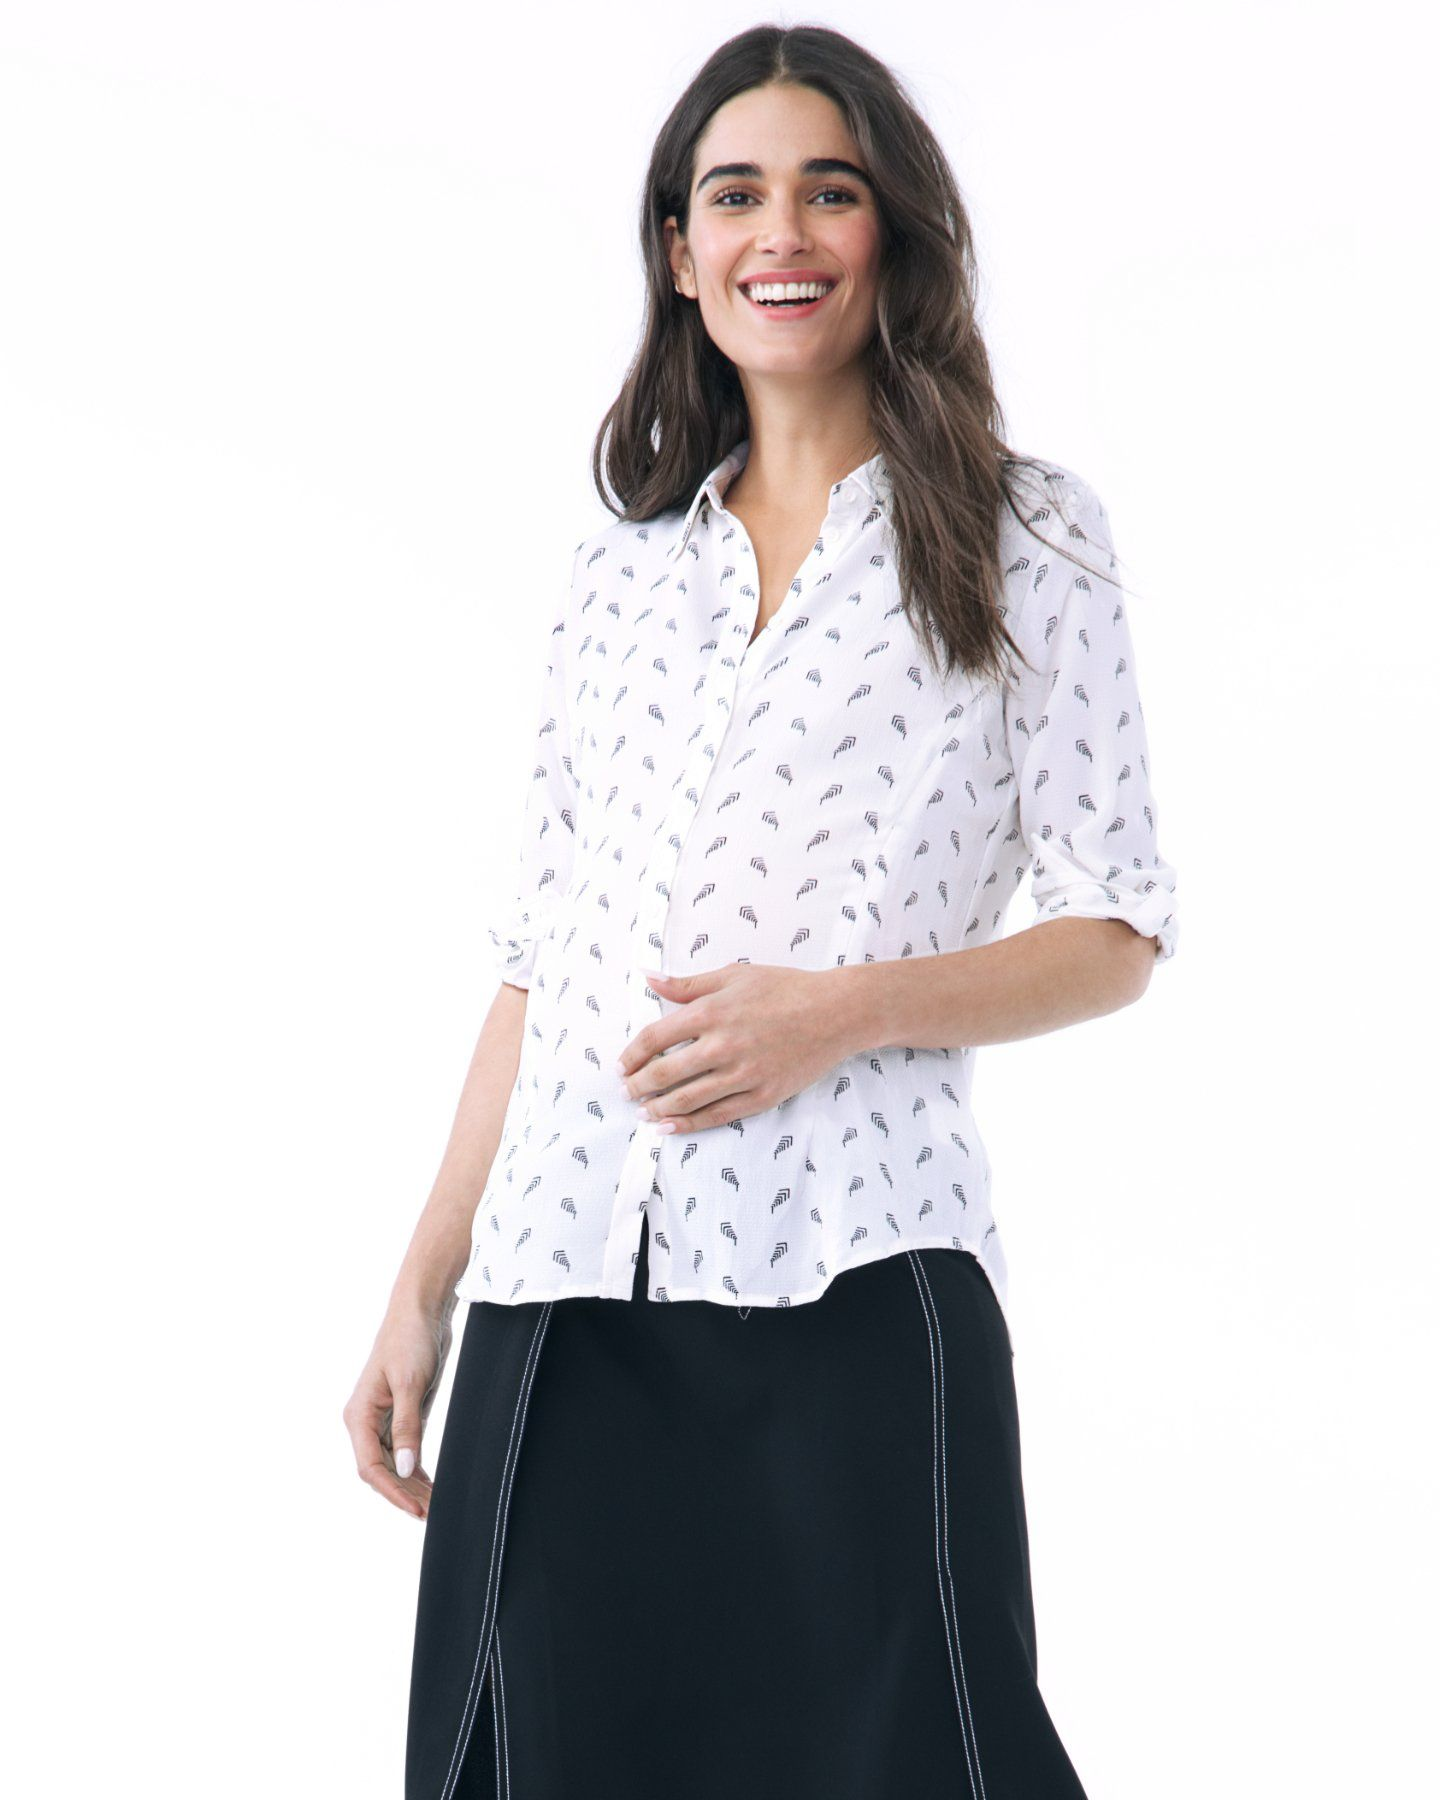 a576055b0b7b9 The riley nursing blouse is a casual yet stylish top for playtime or work.  It's chic yet utilitarian with its functional zippers on both side seams  for ...